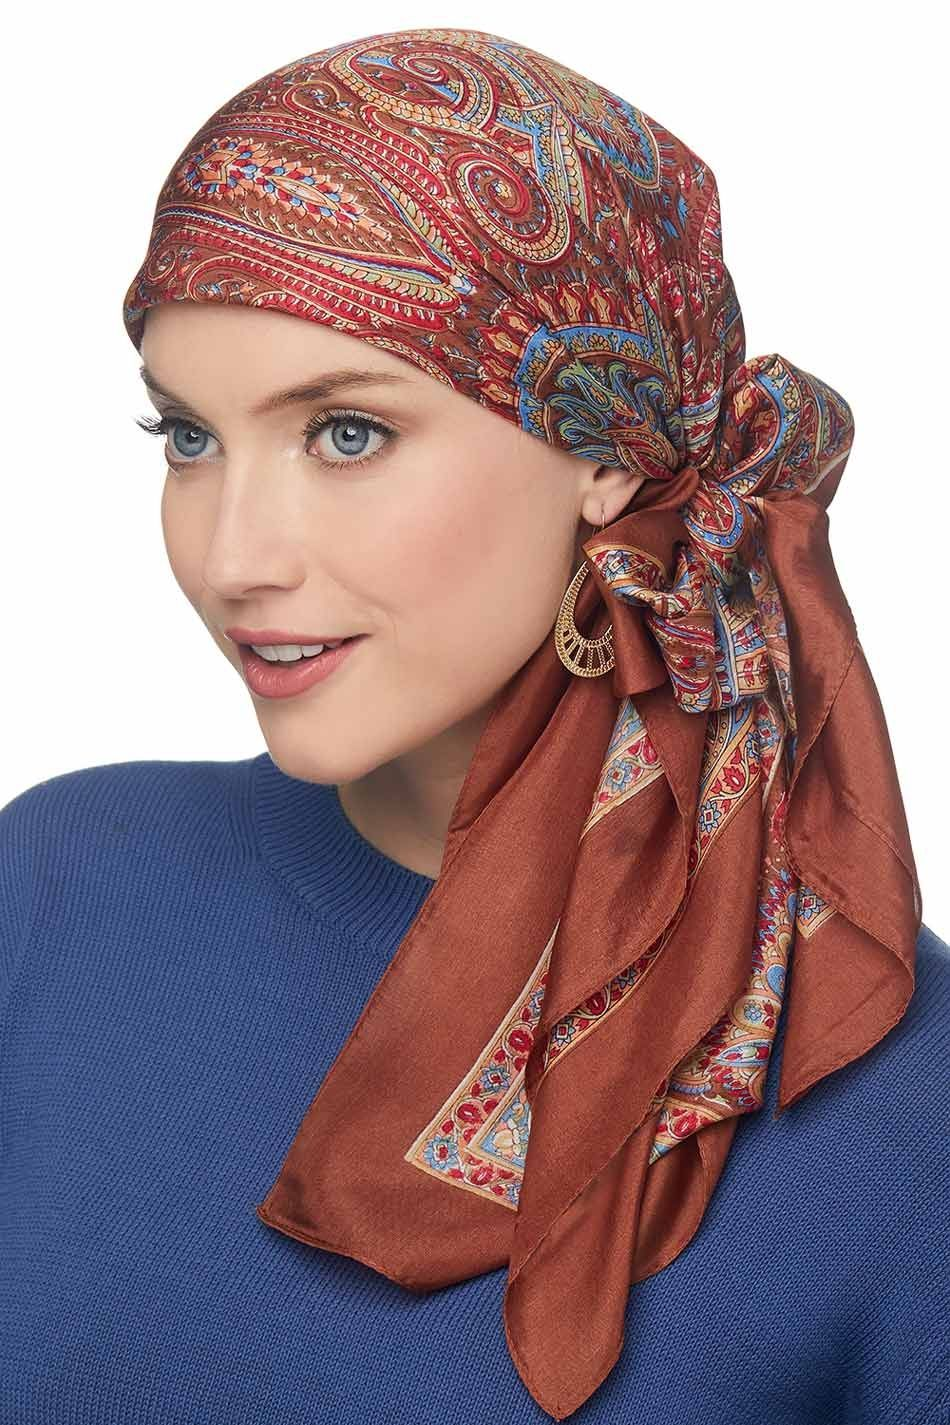 Hair Scarf Tips For Design